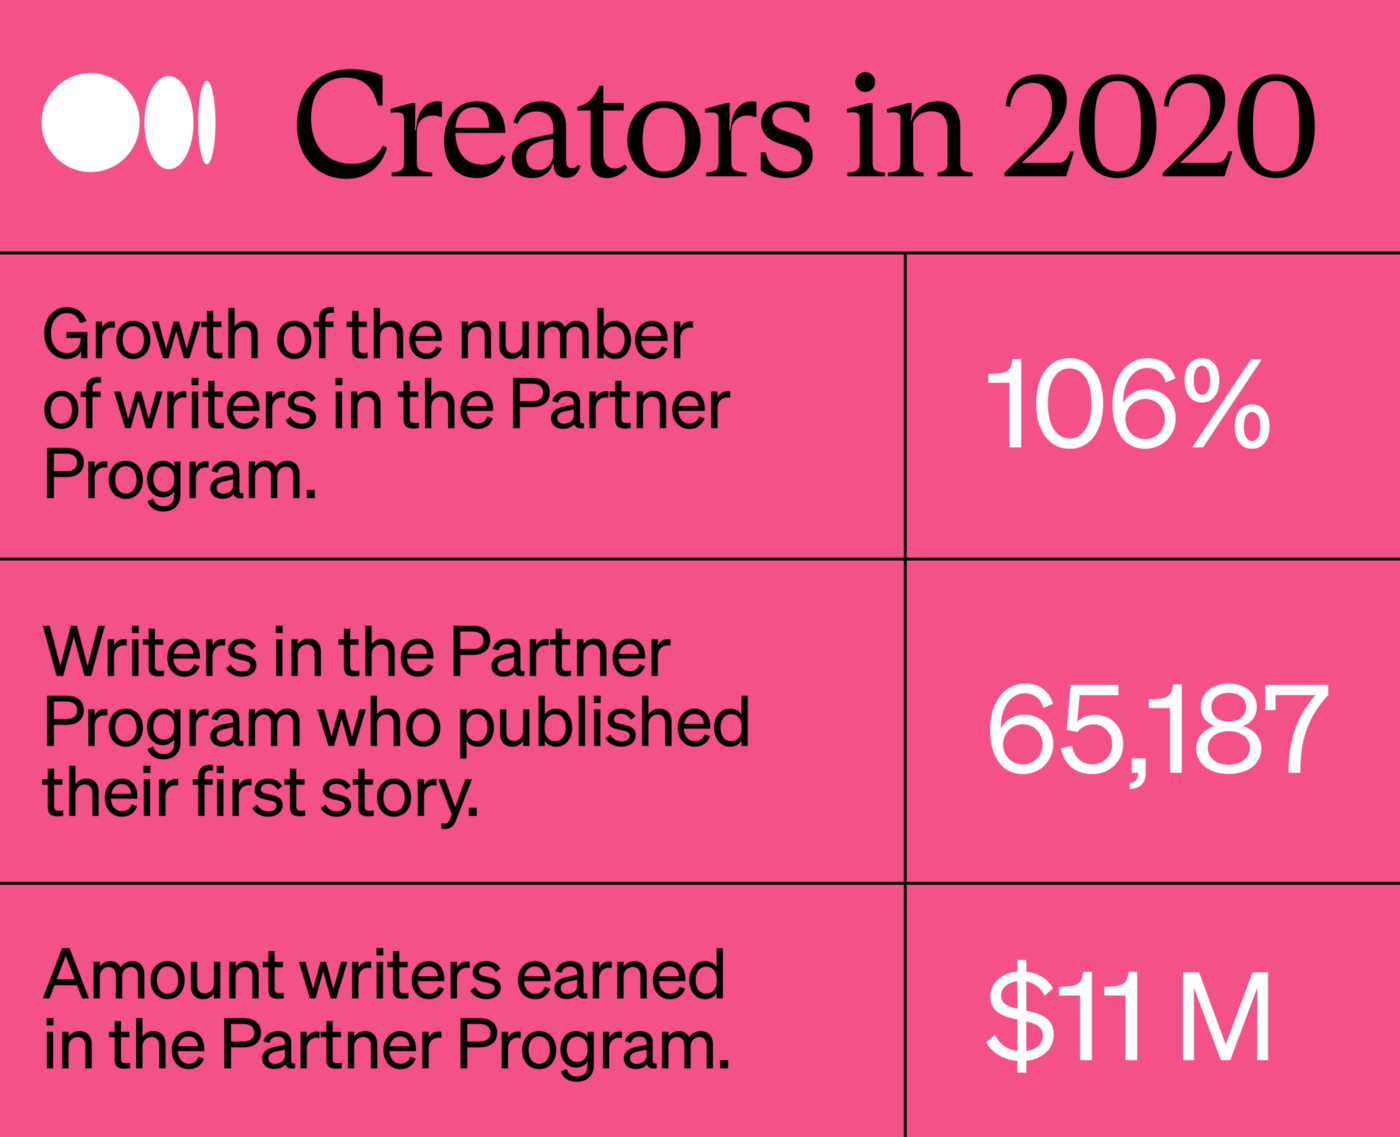 In the Partner Program in 2020, there was 106% growth, 65,187 writers published their first story, and $11M in total earnings